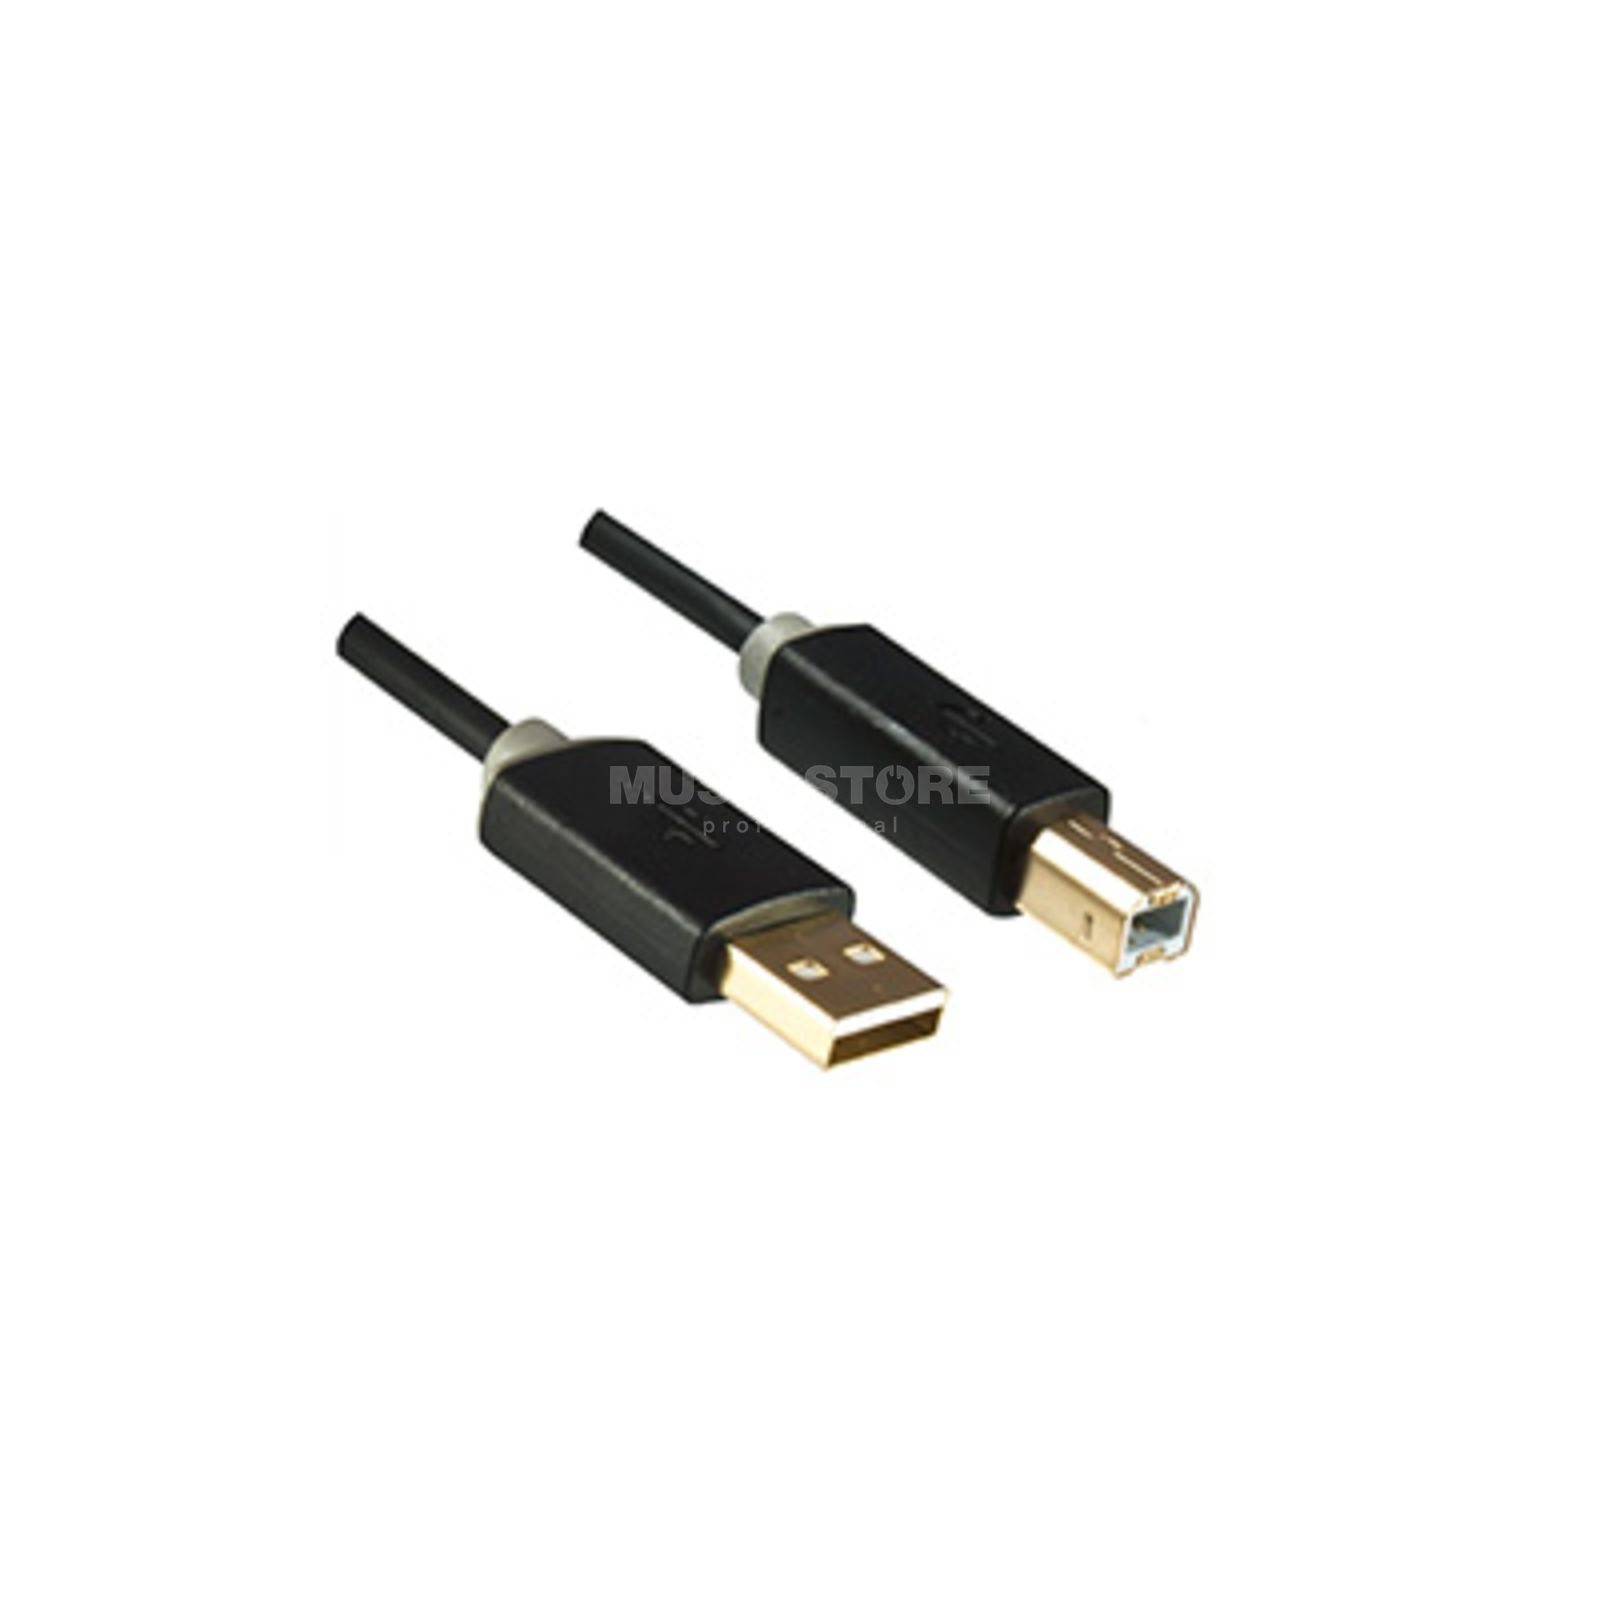 Dinic USB 2.0-Kabel schwarz A-Stecker/B-Stecker 2m Product Image